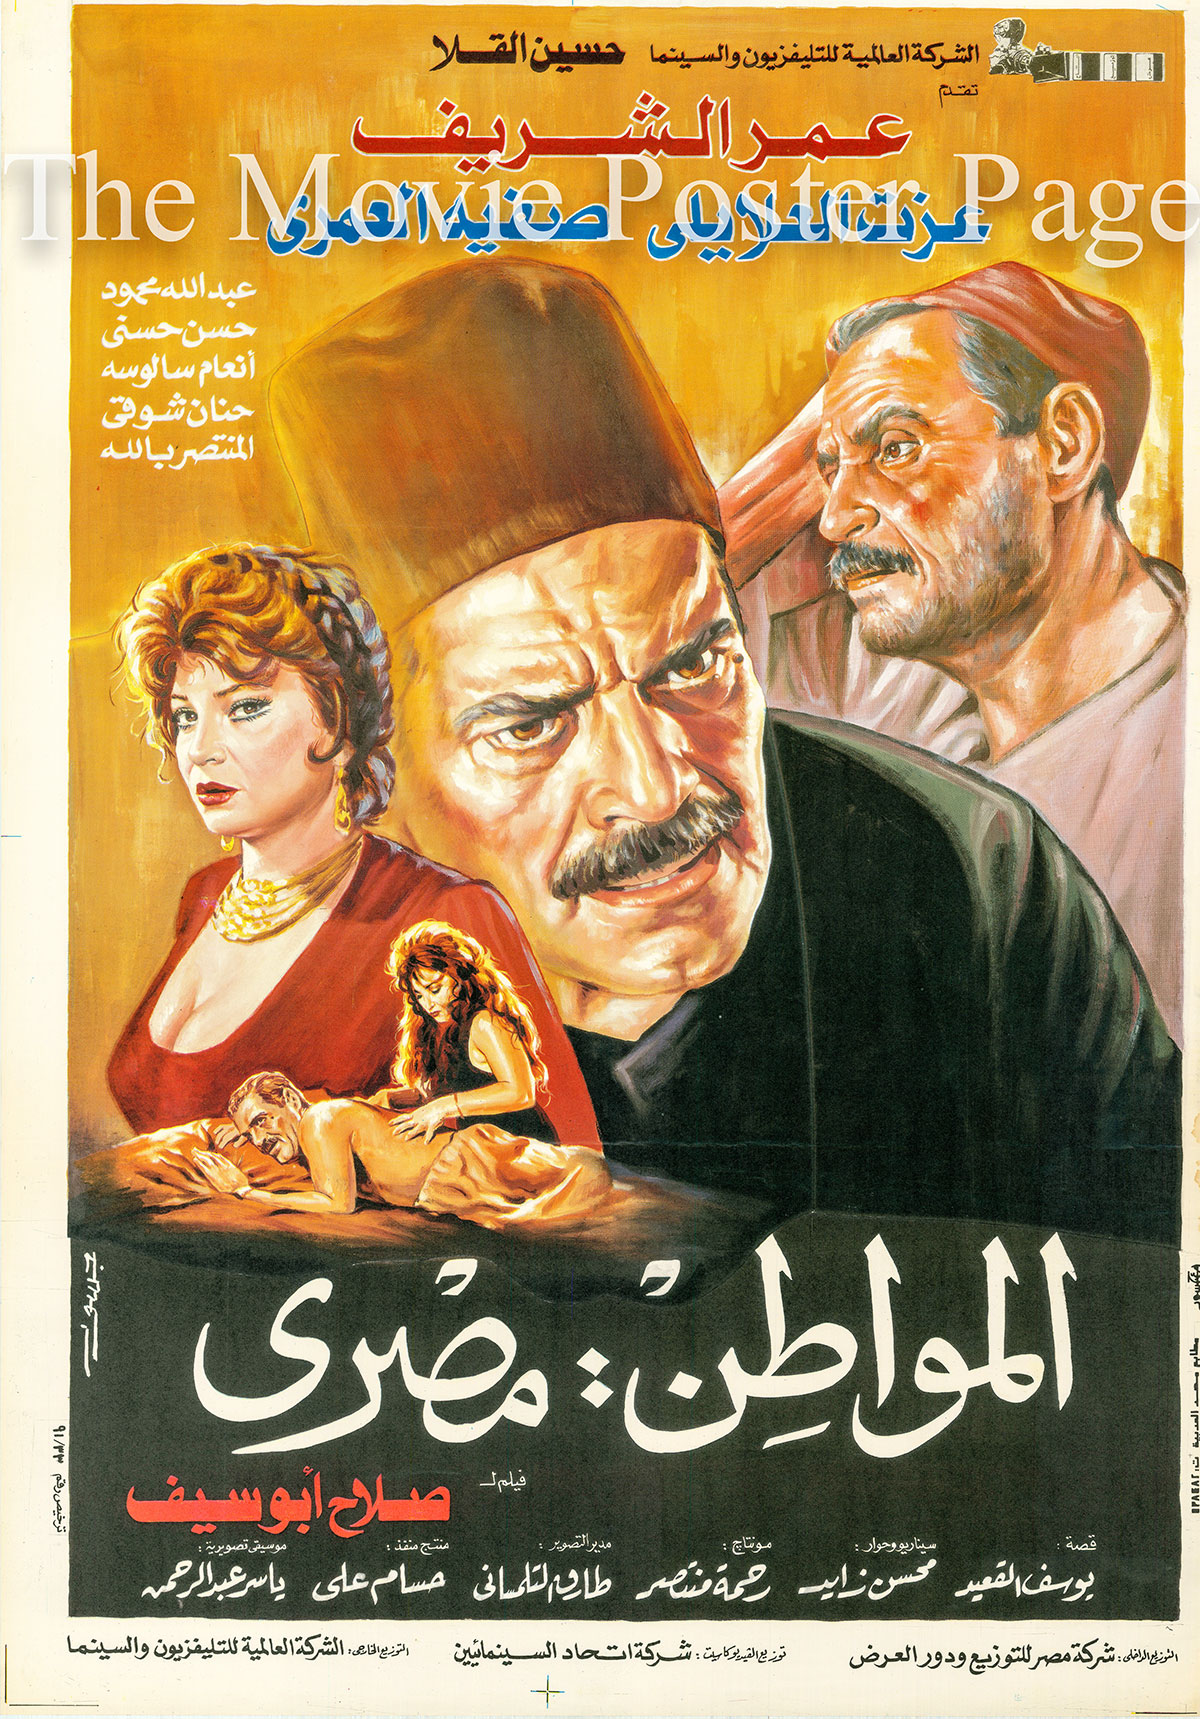 Pictured is an Egyptian promotional poster for the 1991 Salah Abouseif film War in the Land of Egypt, starring Omar Sharif.